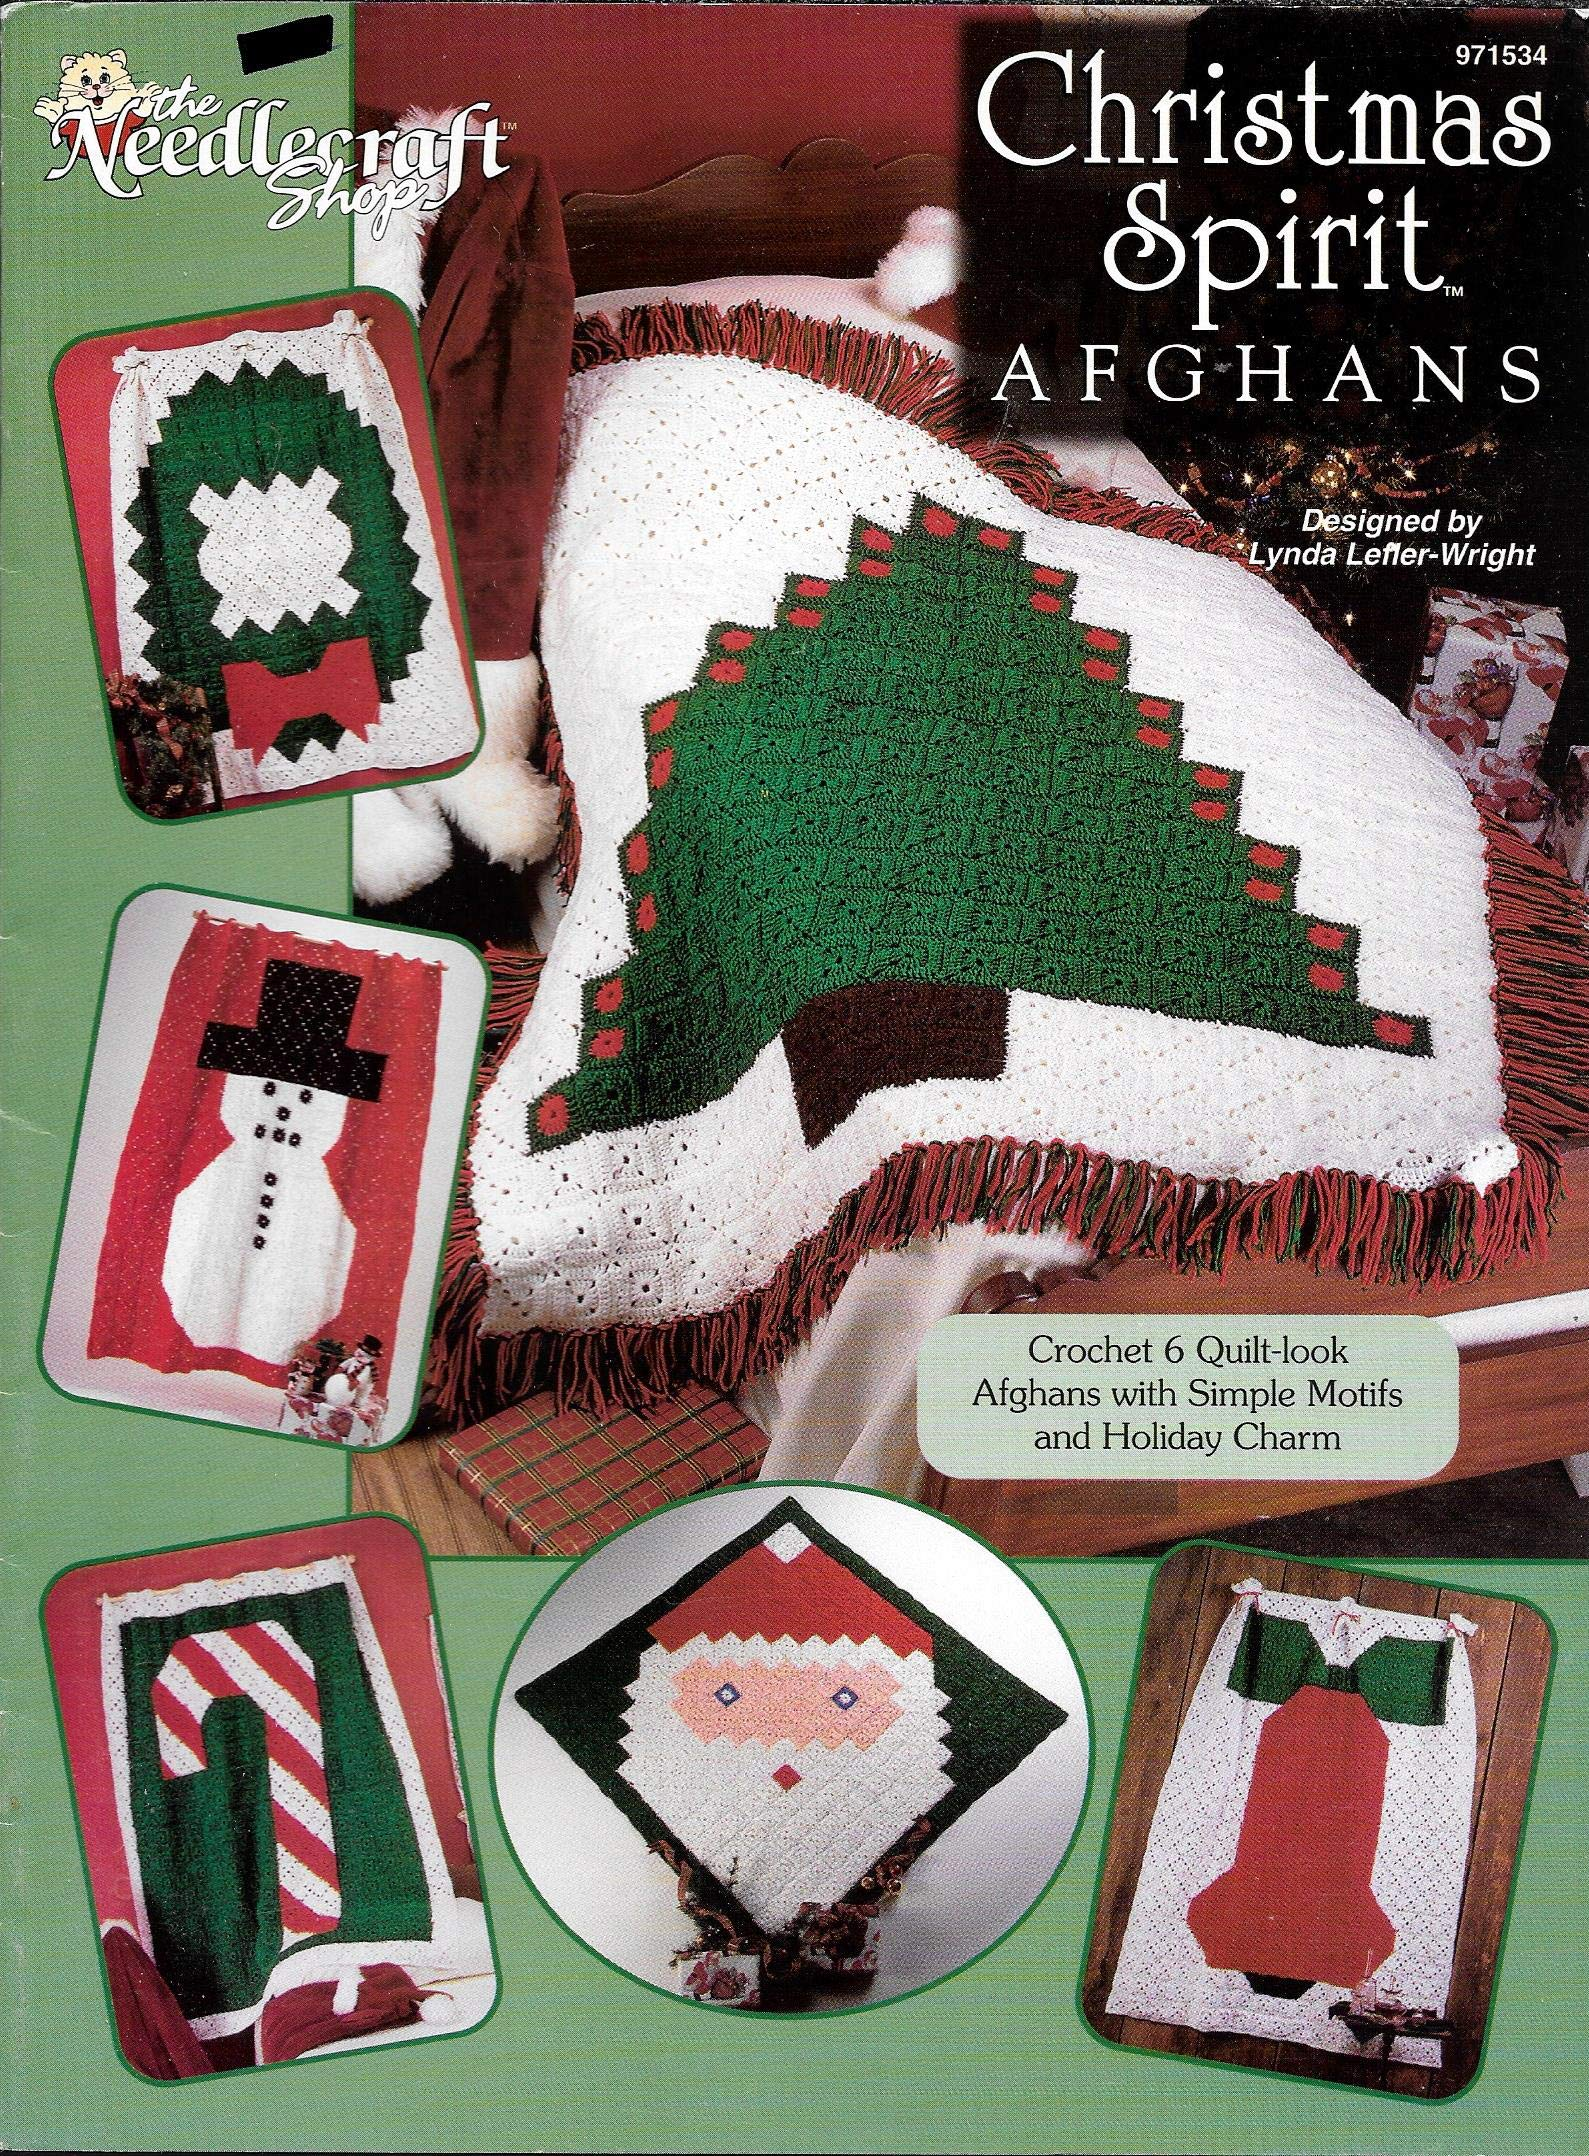 CHRISTMAS SPIRIT AFGHANS - THE NEEDLECRAFT SHOP - #971534 Pamphlet – 1997 Lynda Lefler-Wright B01JKTWMMU